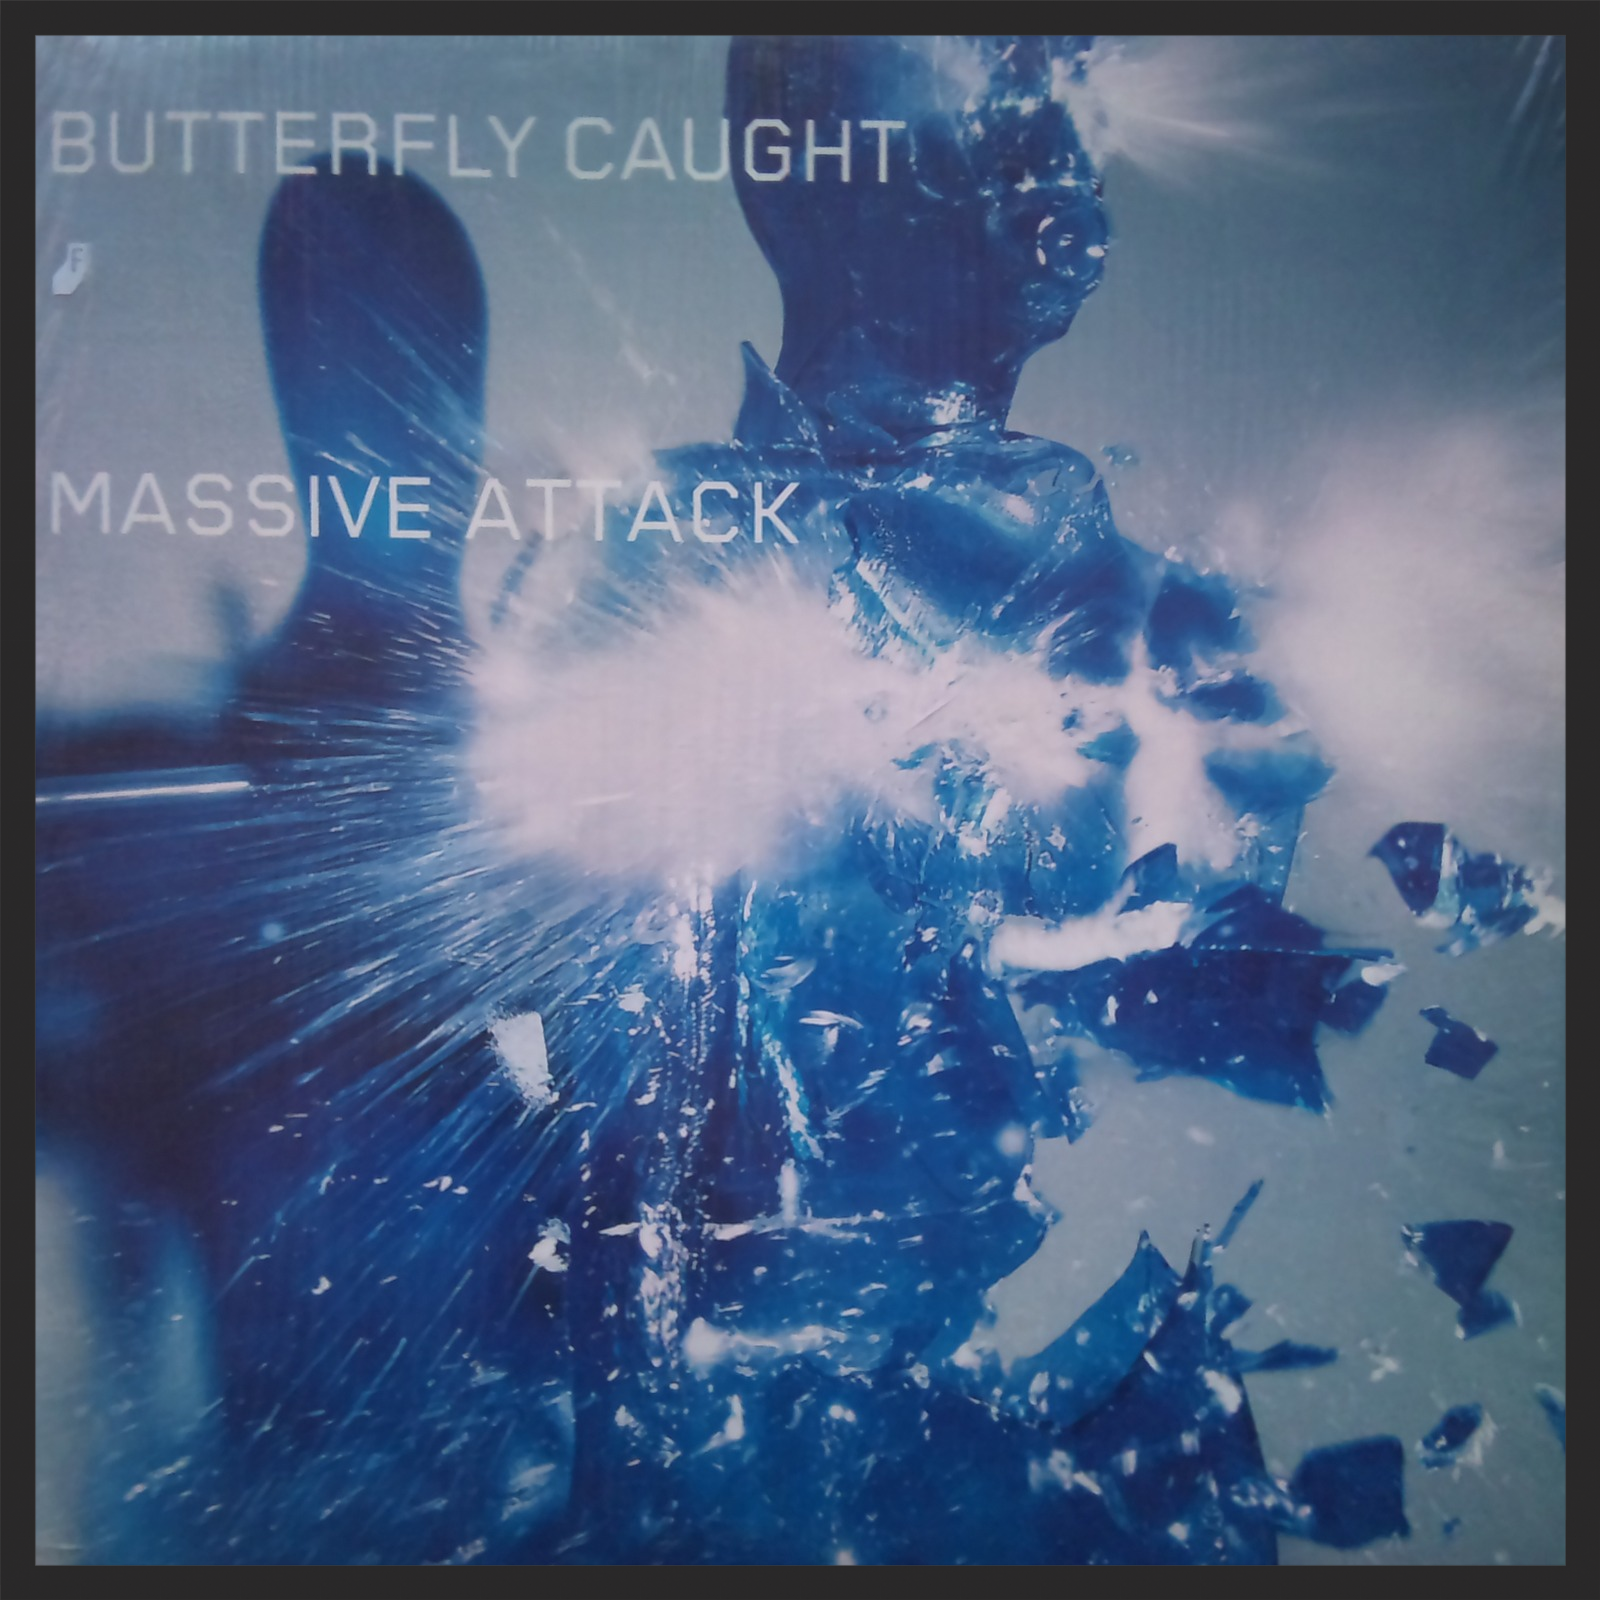 The Front Cover Of The Butterfly Caught Single Release.